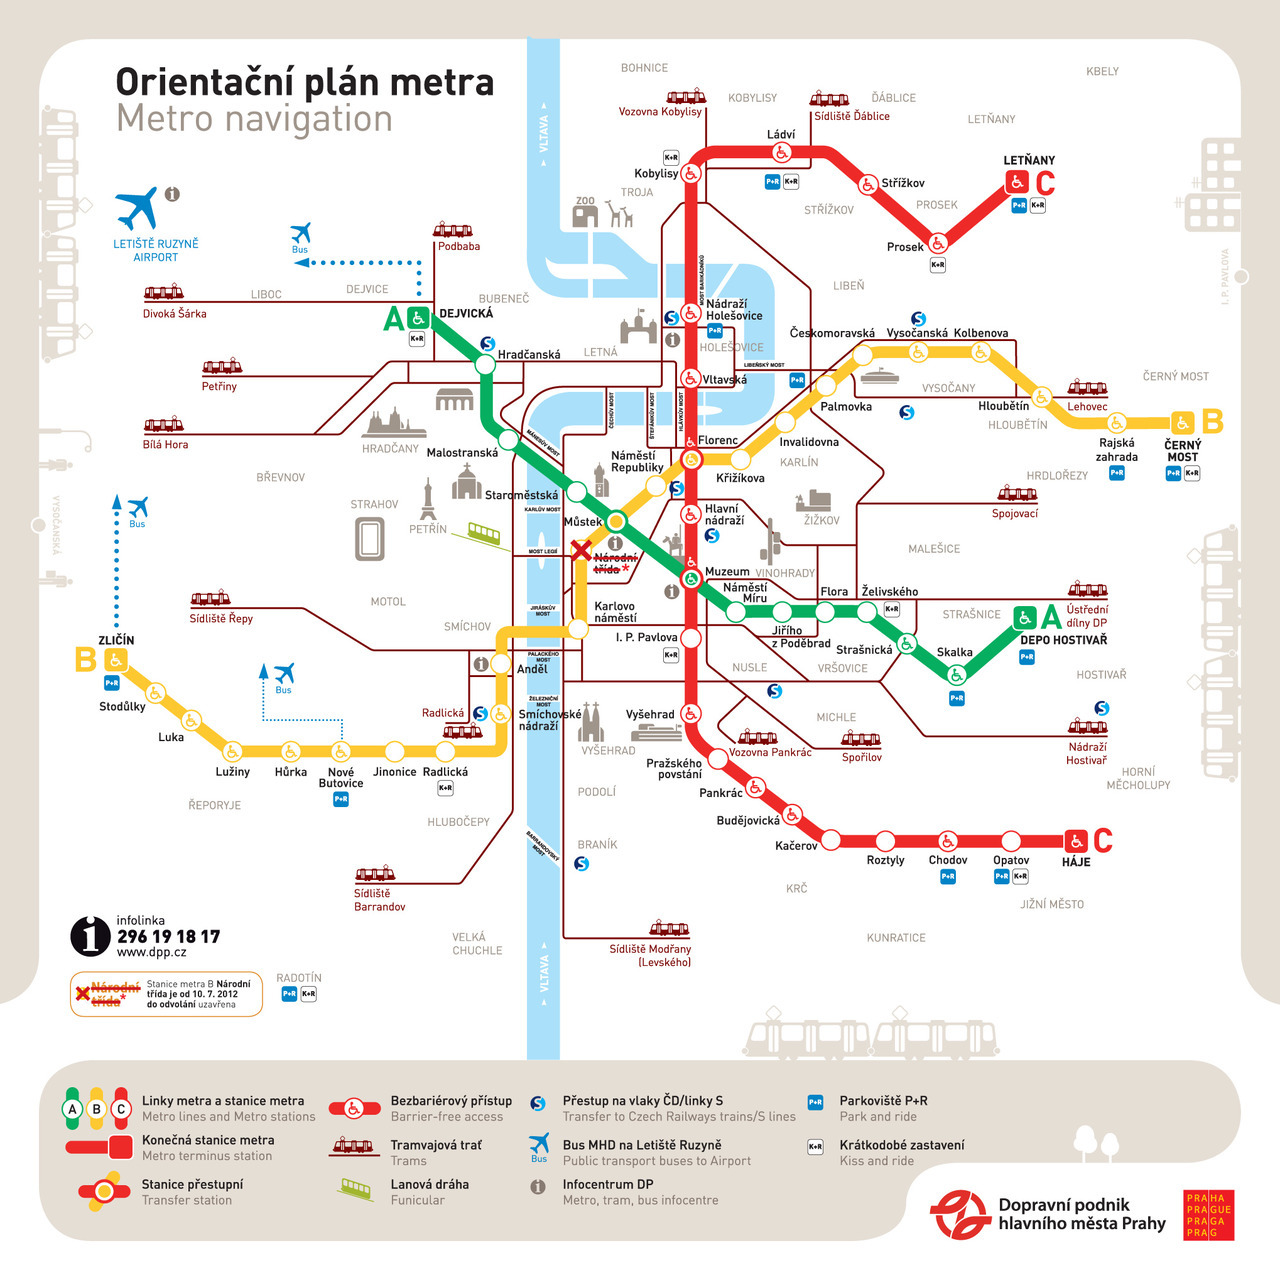 "Official Map: Prague Metro Orientation Map This is the first of three posts regarding current transit maps in Prague, the capital of the Czech Republic. All are part of a unified set of maps (all of which use the interesting framing device of stylised buildings and trams, which I can't decide if I think is playfully irreverent or just plain stupid) and provide interesting lessons on how much information is ""just right"" for a transit map to be really useful. This map is a simplified overview or orientation map of the Metro, and seems to serve a similar purpose to the Key Bus Routes of London Map that we've already featured - to provide a quick guide to public transport for visitors to the city. However, it's slightly less successful than that map, as we'll see below. Have we been there? Yes, in 2004. After one initial trip on the Metro from the railway station to the hostel, I used trams exclusively. What we like: Breezy and simple, bright and bold with a unique look. The little icons for major landmarks are quite charming. The Metro lines stand out really nicely, and interchanges are handled well. What we don't like: By comparison with the Metro lines, the tram lines come off very badly indeed. Without route numbers or anything other than final destinations shown, they're really not very useful in this version of the map other than an indication that tram service exists. After that, you're on your own… Our rating: A nice looking map with its own very distinct look - this map belongs to Prague. I'm still not sure about the cartoon-like framing device, but it is carried across all elements of the corporate identity (other maps, website, etc,), so at least they're consistent! Tram service information is a little light. Three-and-a-half stars.  (Source: Official DPP website)"